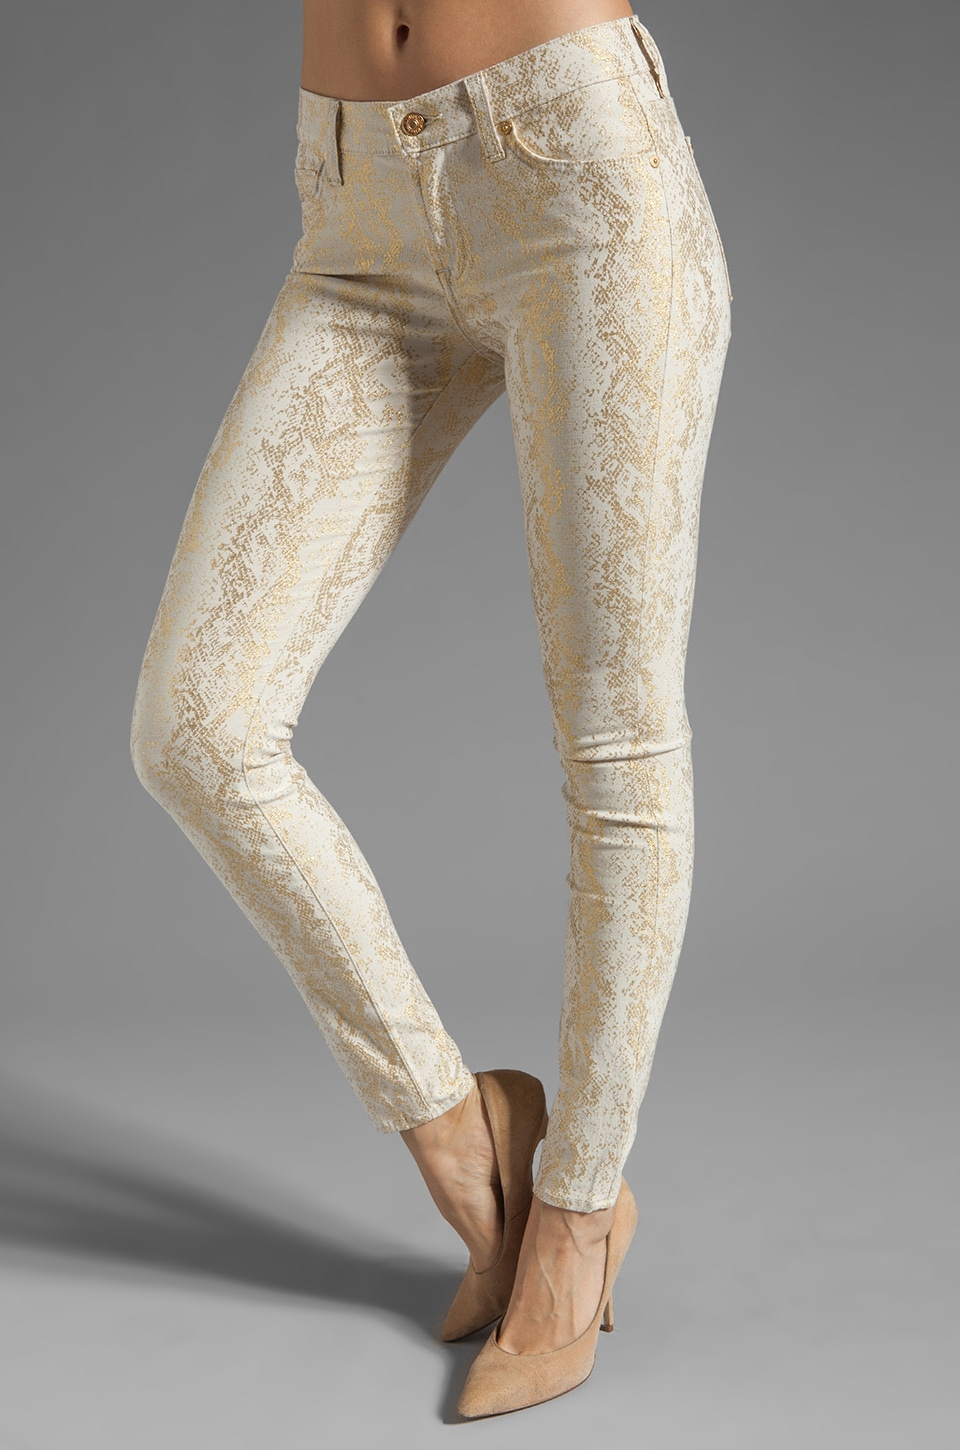 7 For All Mankind The Skinny in White/Gold Jacquard